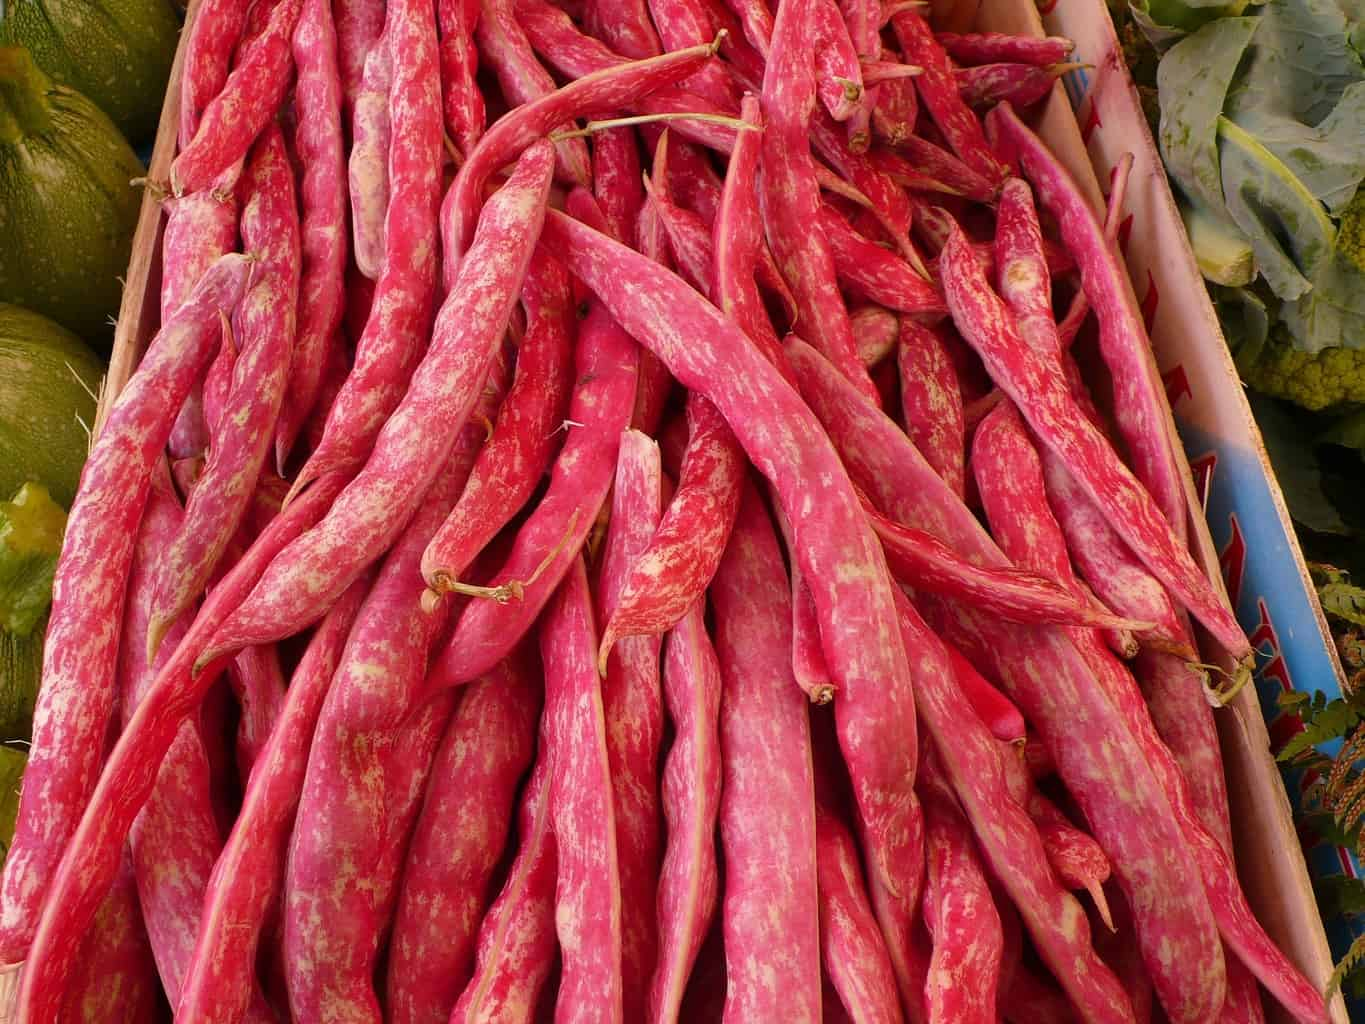 Temps trempage haricots rouges